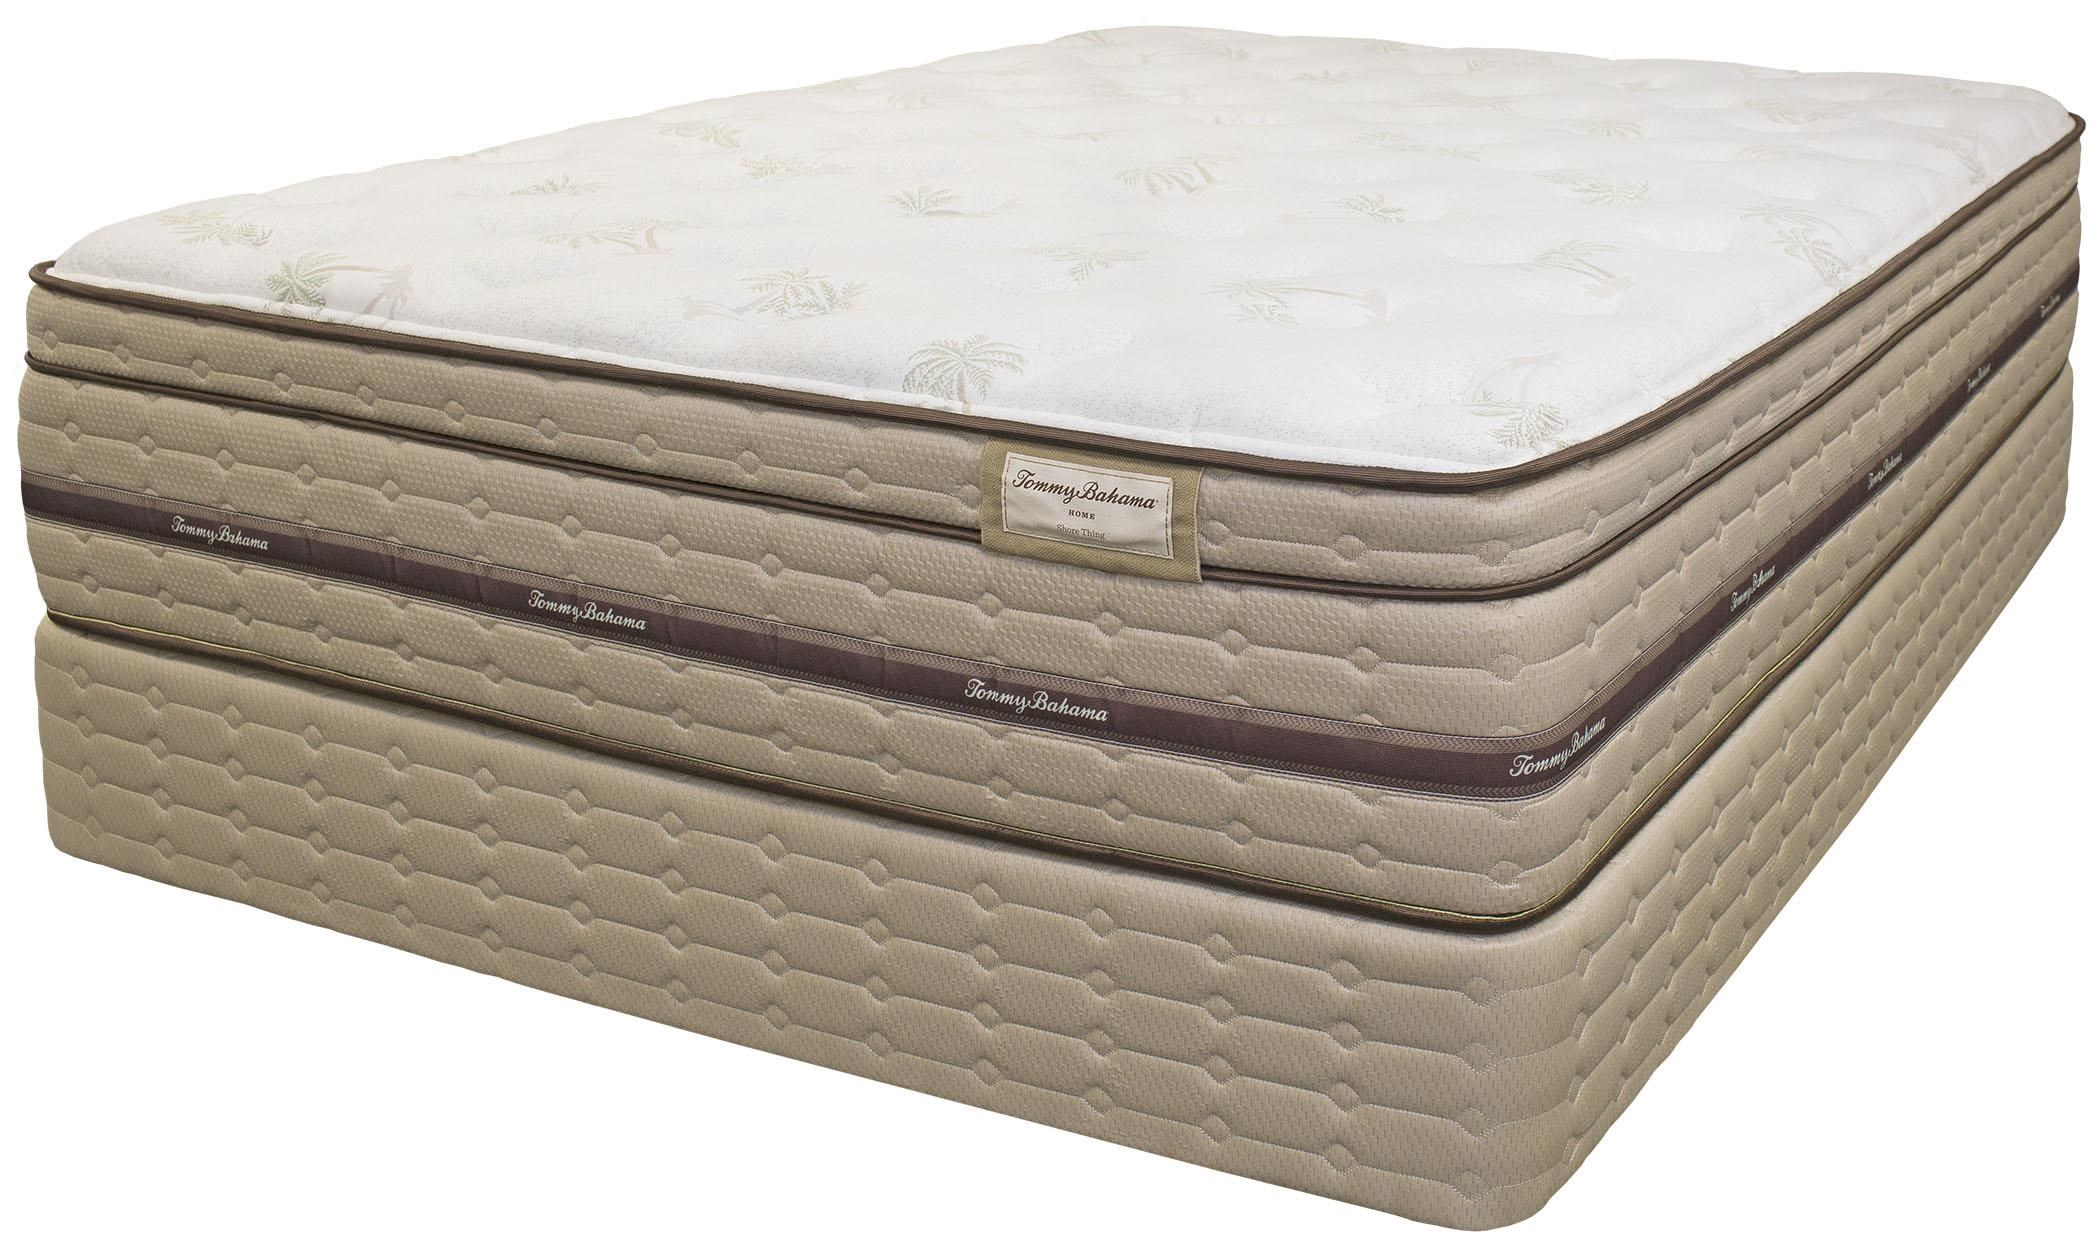 tommy bahama mattress tommy bahama mattress 6030k king shore thing pillow top mattress